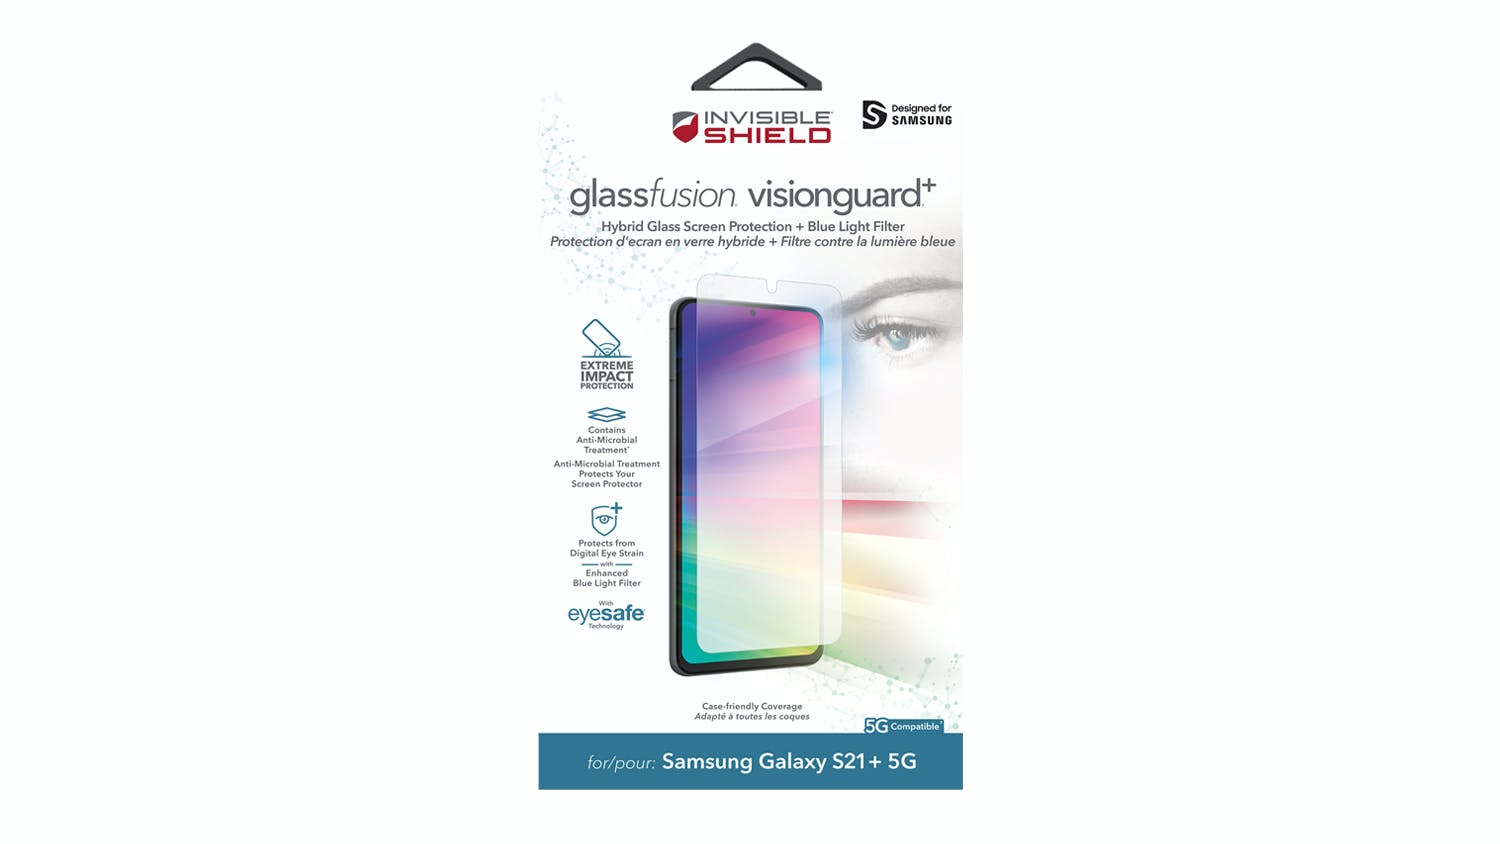 Zagg InvisibleShield GlassFusion VisionGuard+ Screen Protector for Samsung Galaxy S21+ 5G